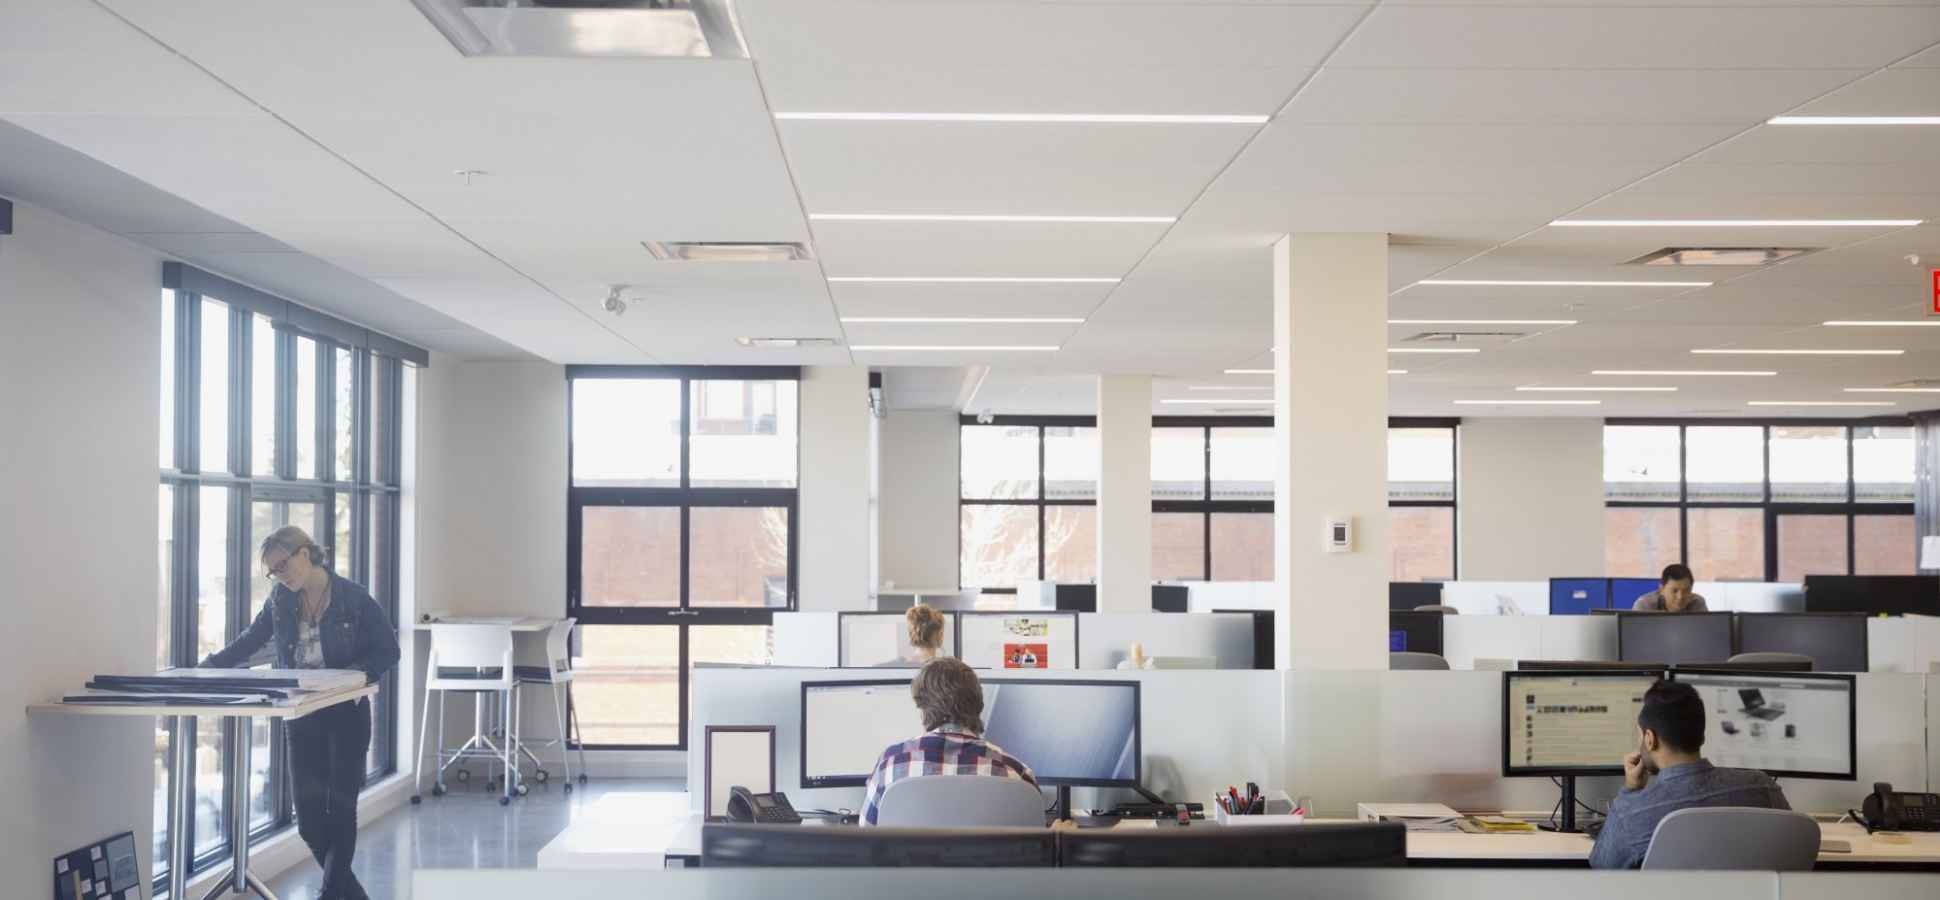 5 Simple Rules to Maximize Your Office Space